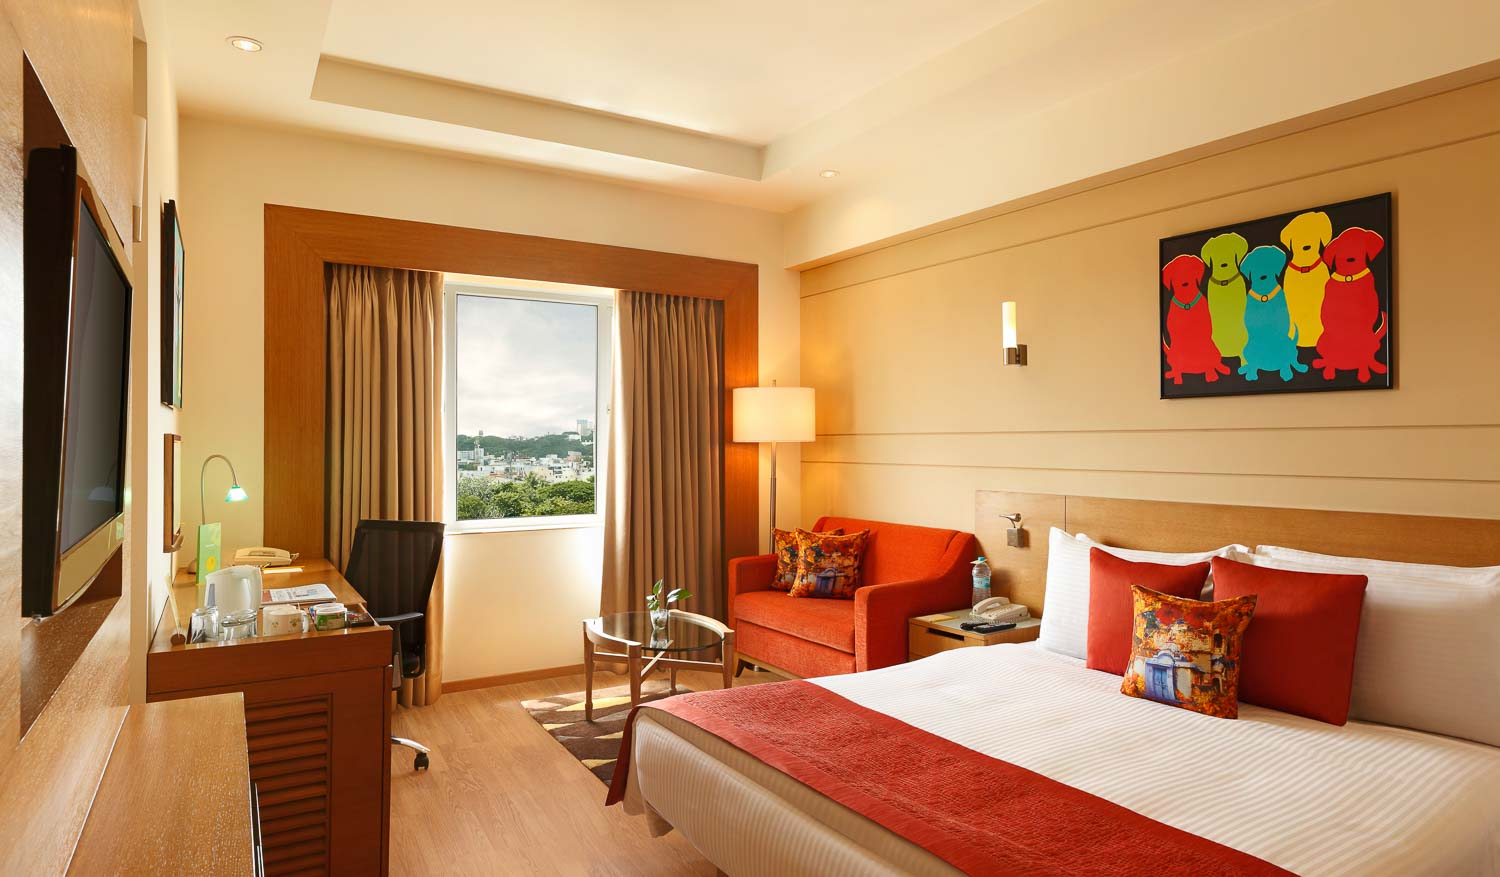 Hotel Green Lemon Lemon Tree Premier Ulsoor Lake Bengaluru Hotel Rooms